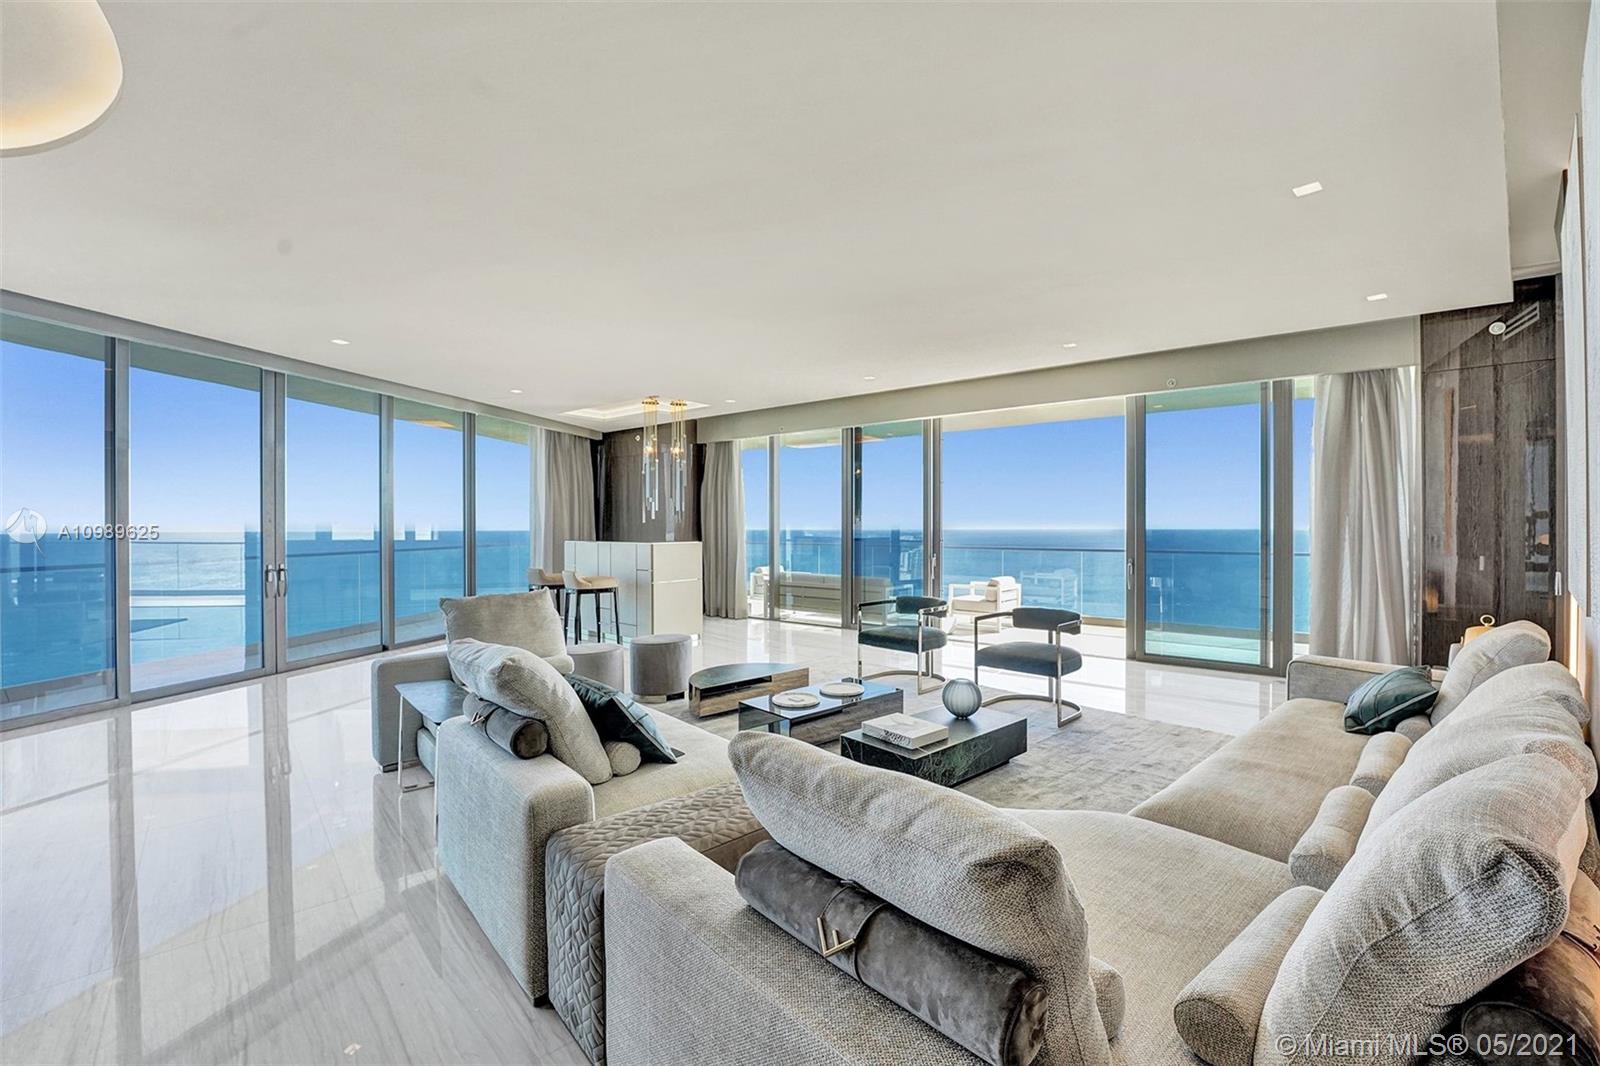 Welcome to Residences by Armani Casa. The most beautiful big corner unit and flow-through residence with unobstructed views to Ocean, City Views and Intracoastal. This residence features 4 bedroom /5.5 Bathrooms + service room masterfully distributed in 4083 sqft of living area, with wraparound terrace with floor to ceiling windows. Exquisitely finished with imported Italian Marble and decorated to detail, comes fully furnished with partial Fendi Furniture  with beautiful combination of textures and colors. Armani Casa Residences offers State-Of-The-Art Amenities: Restaurant, Bar, Pool, Business Center, Spa and Fitness Center,  Theater Room, Cigar and Wine Room, Children's play area, Security, Concierge + Valet Parking. This is a must see Unit, it will take your breath away. Easy to show.